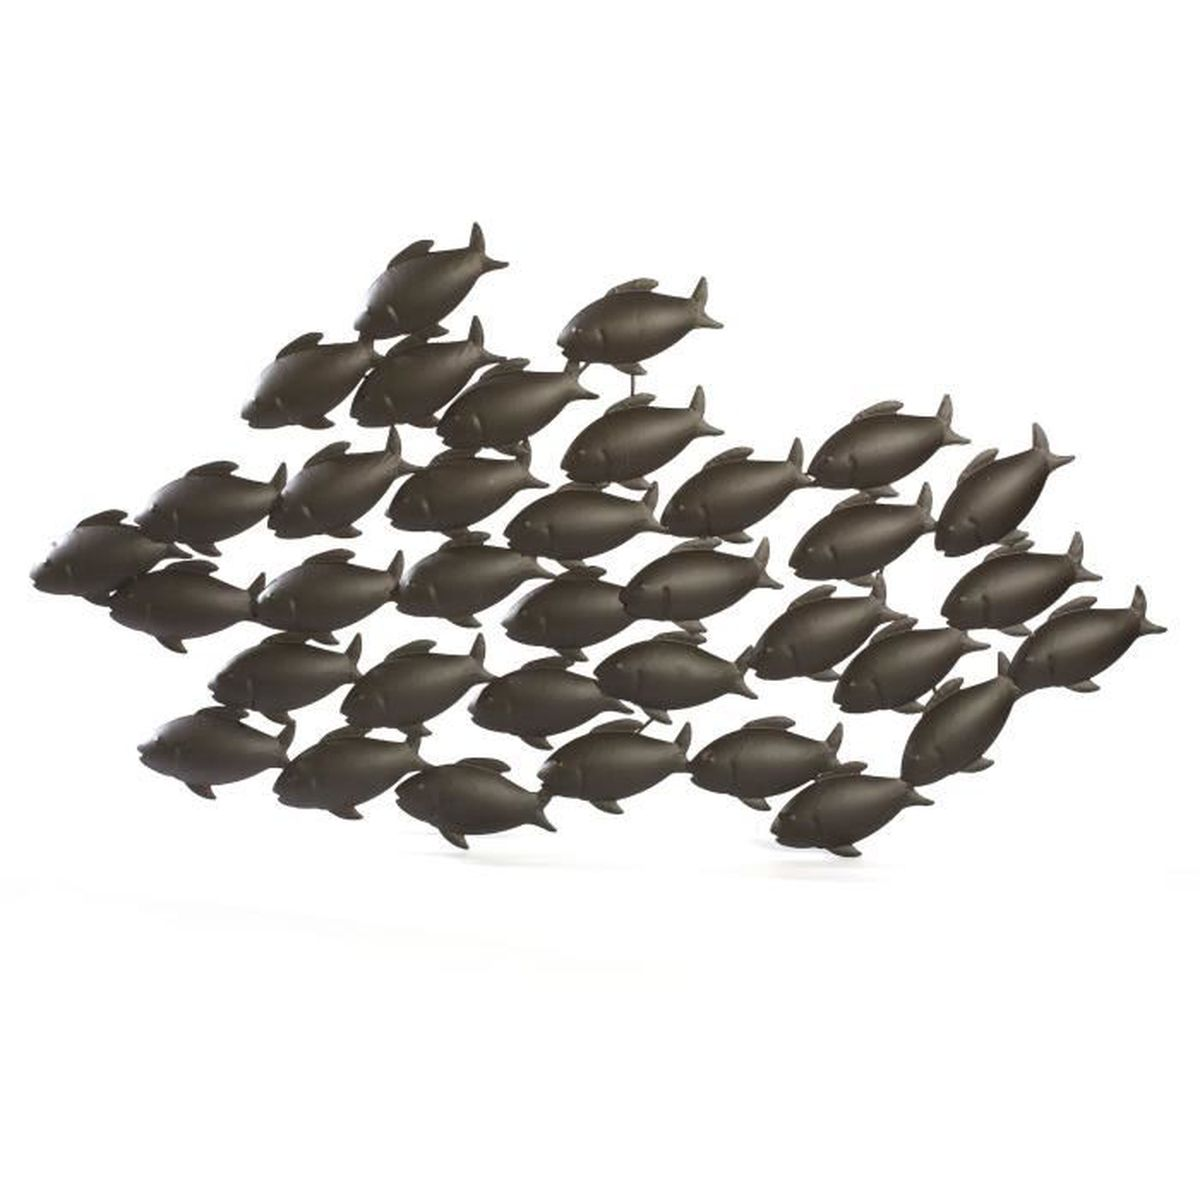 Sea d coration murale poissons en m tal achat vente for Deco murale en metal